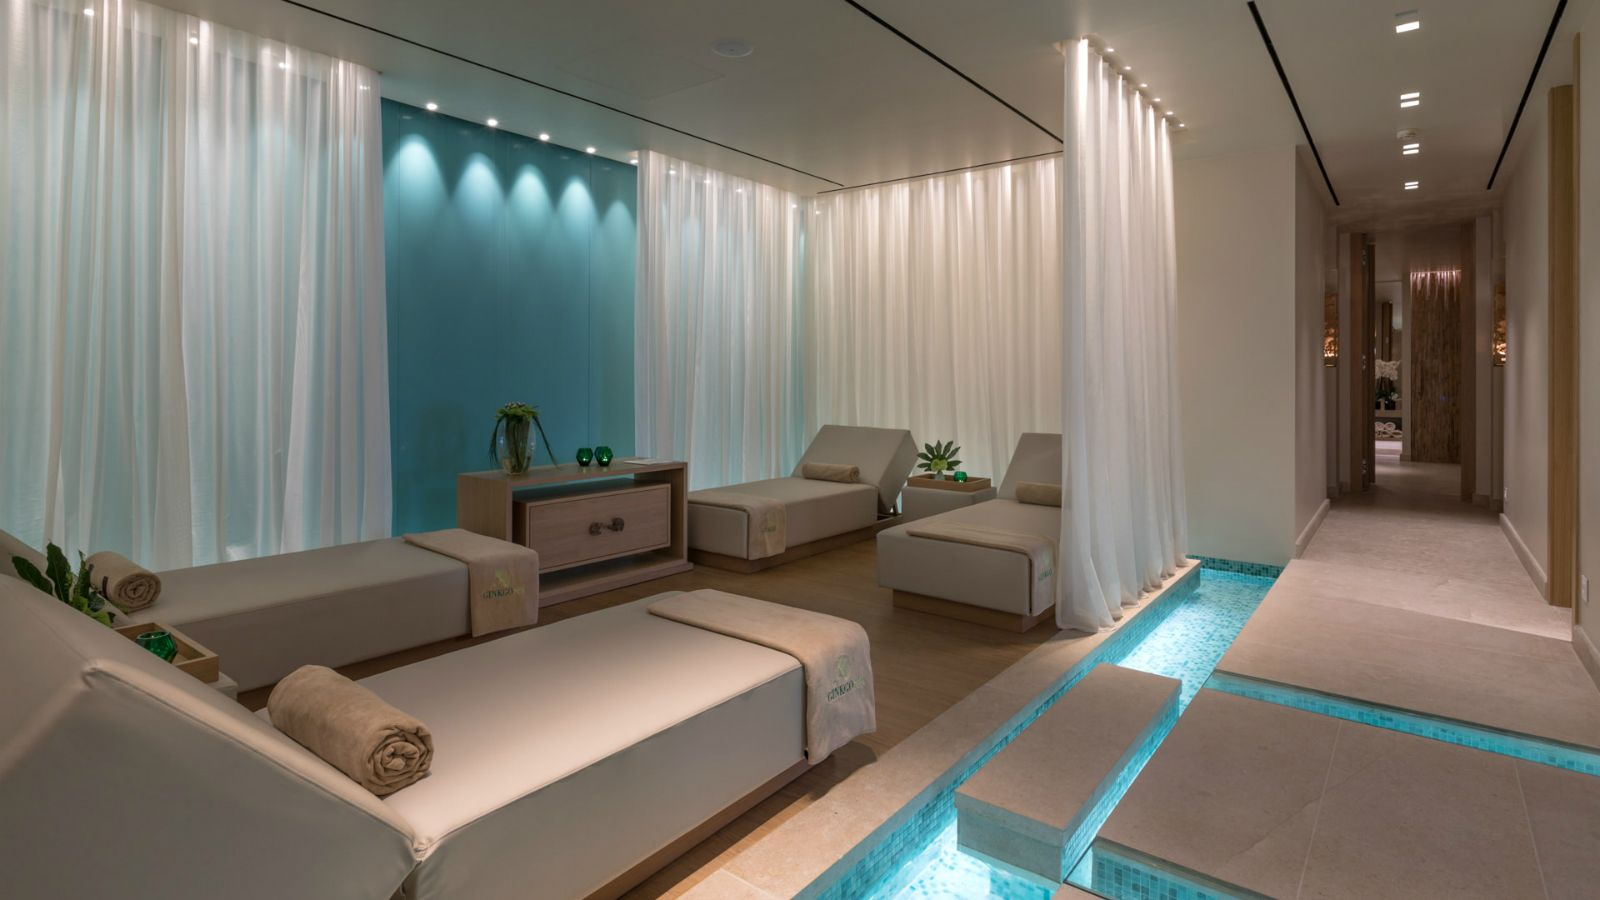 Relax area at the new Ginkgo Spa at Santa Marina Resort Mykonos The Luxury Collection (1)